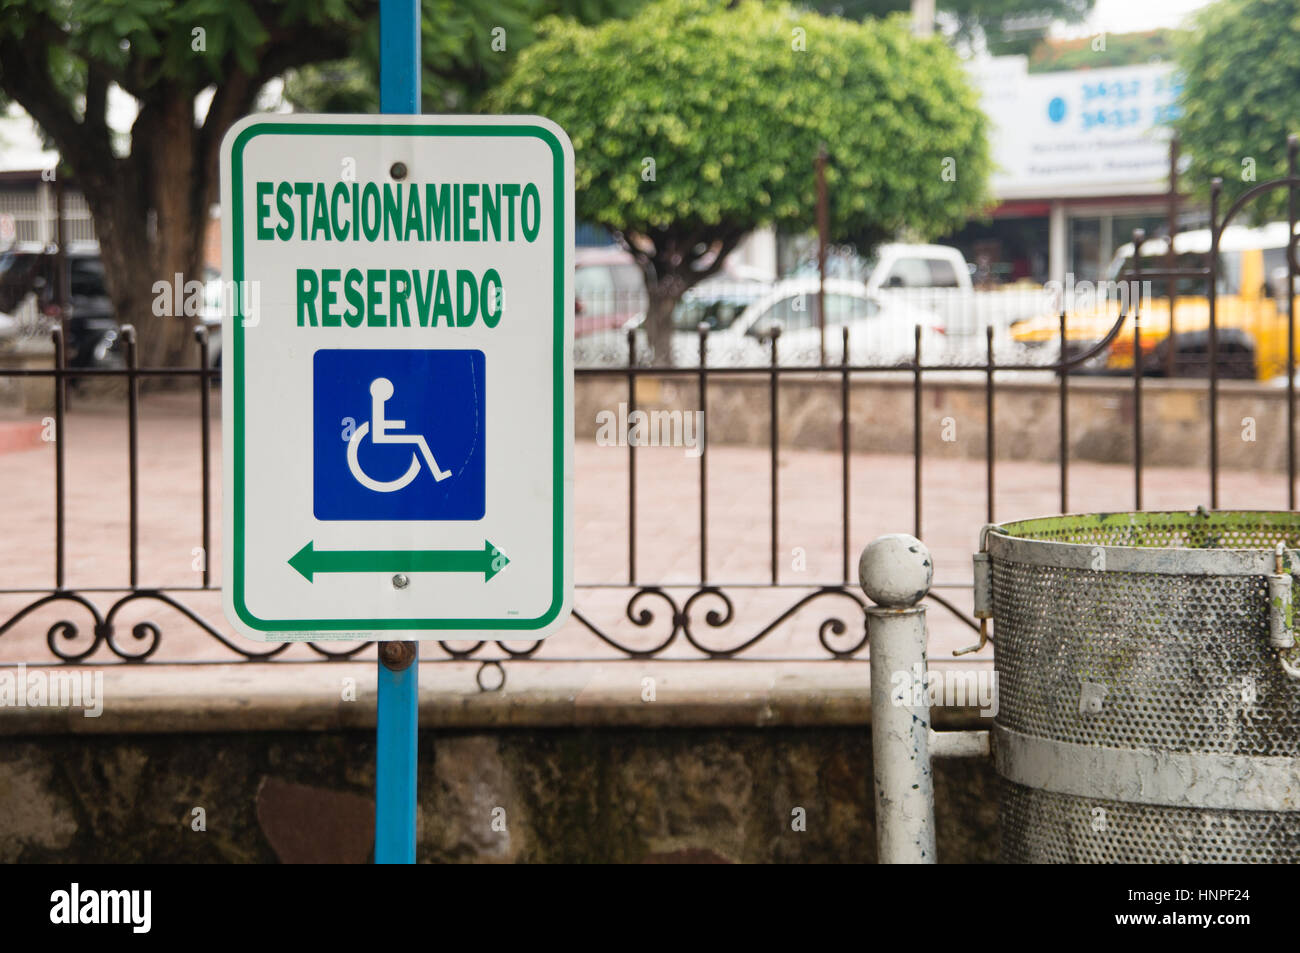 A sign for handicapped parking next to a trash can in the middle of the city. - Stock Image